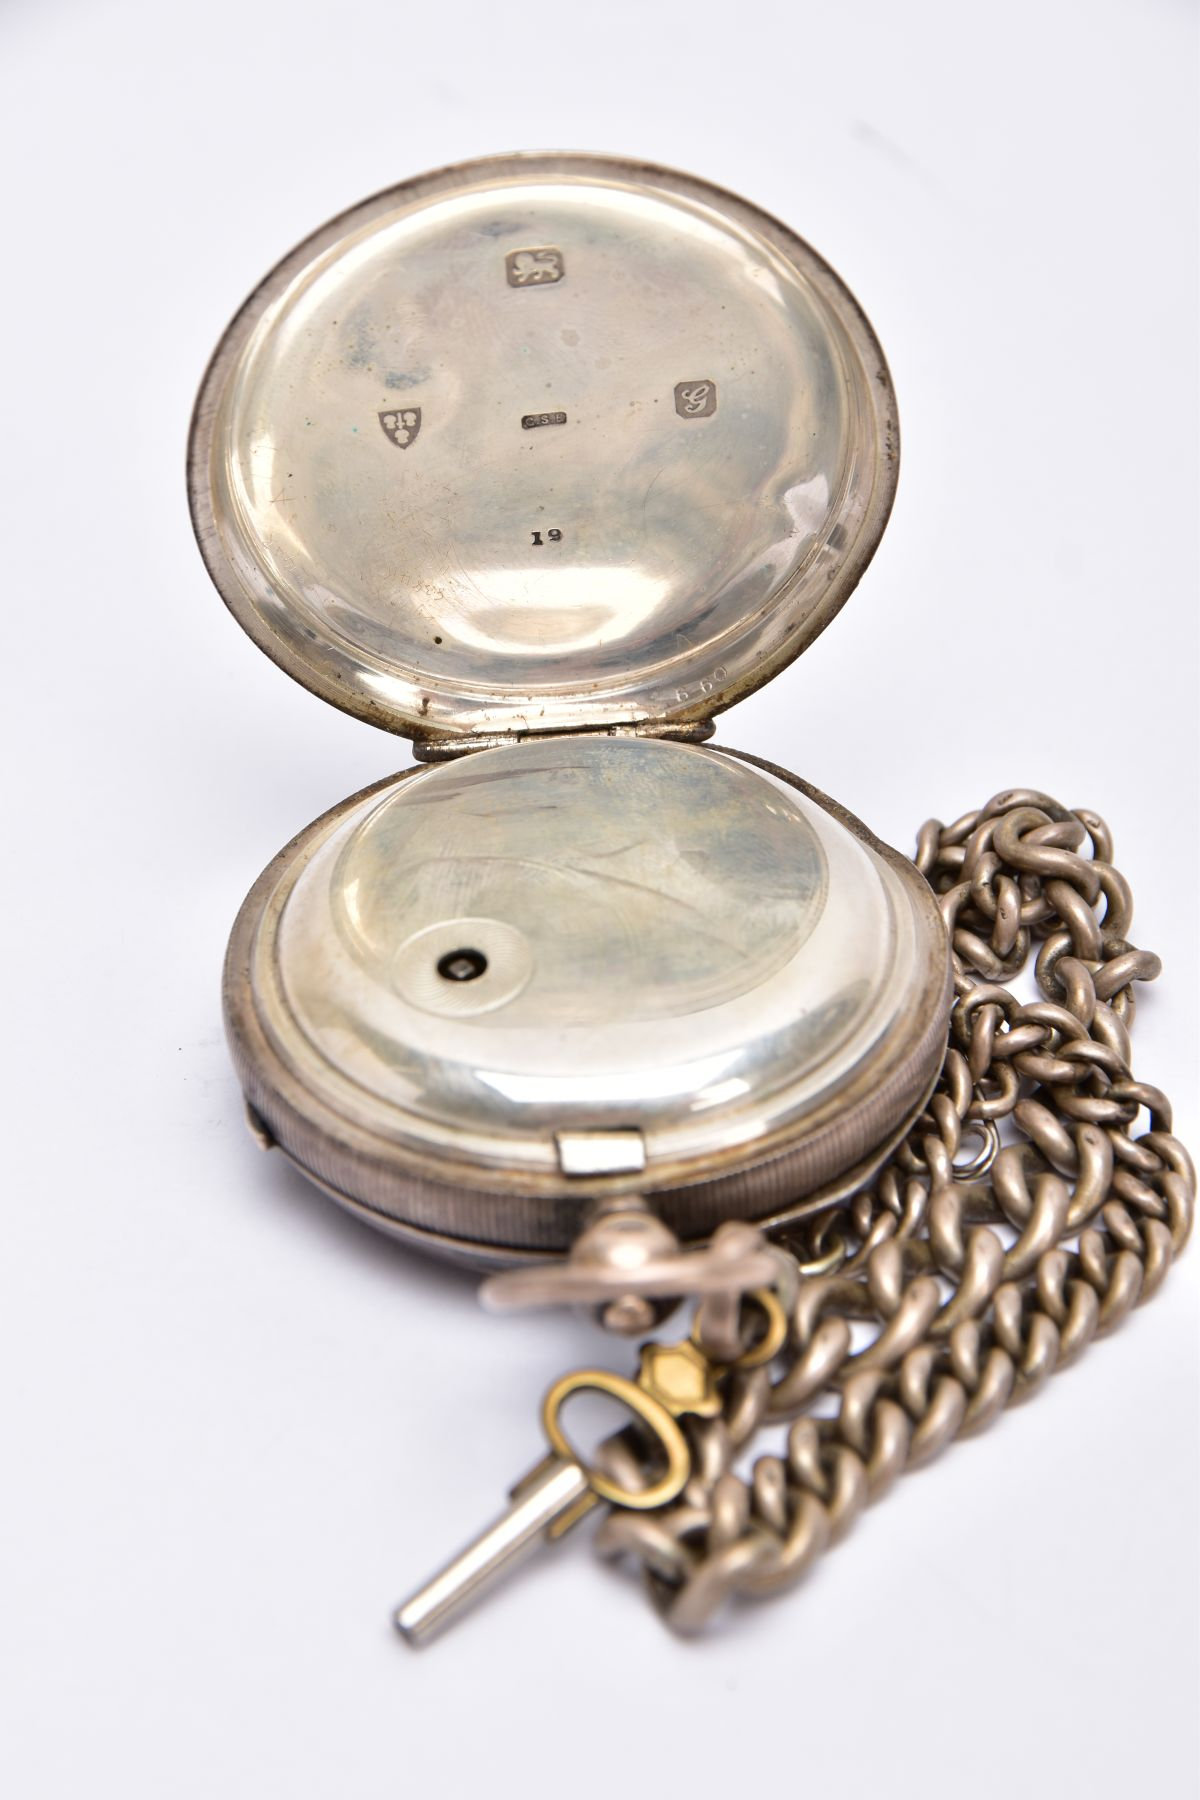 A SILVER OPEN FACED POCKET WITH ALBERT CHAIN, white dial signed 'The Empire', Roman numerals, - Image 4 of 5